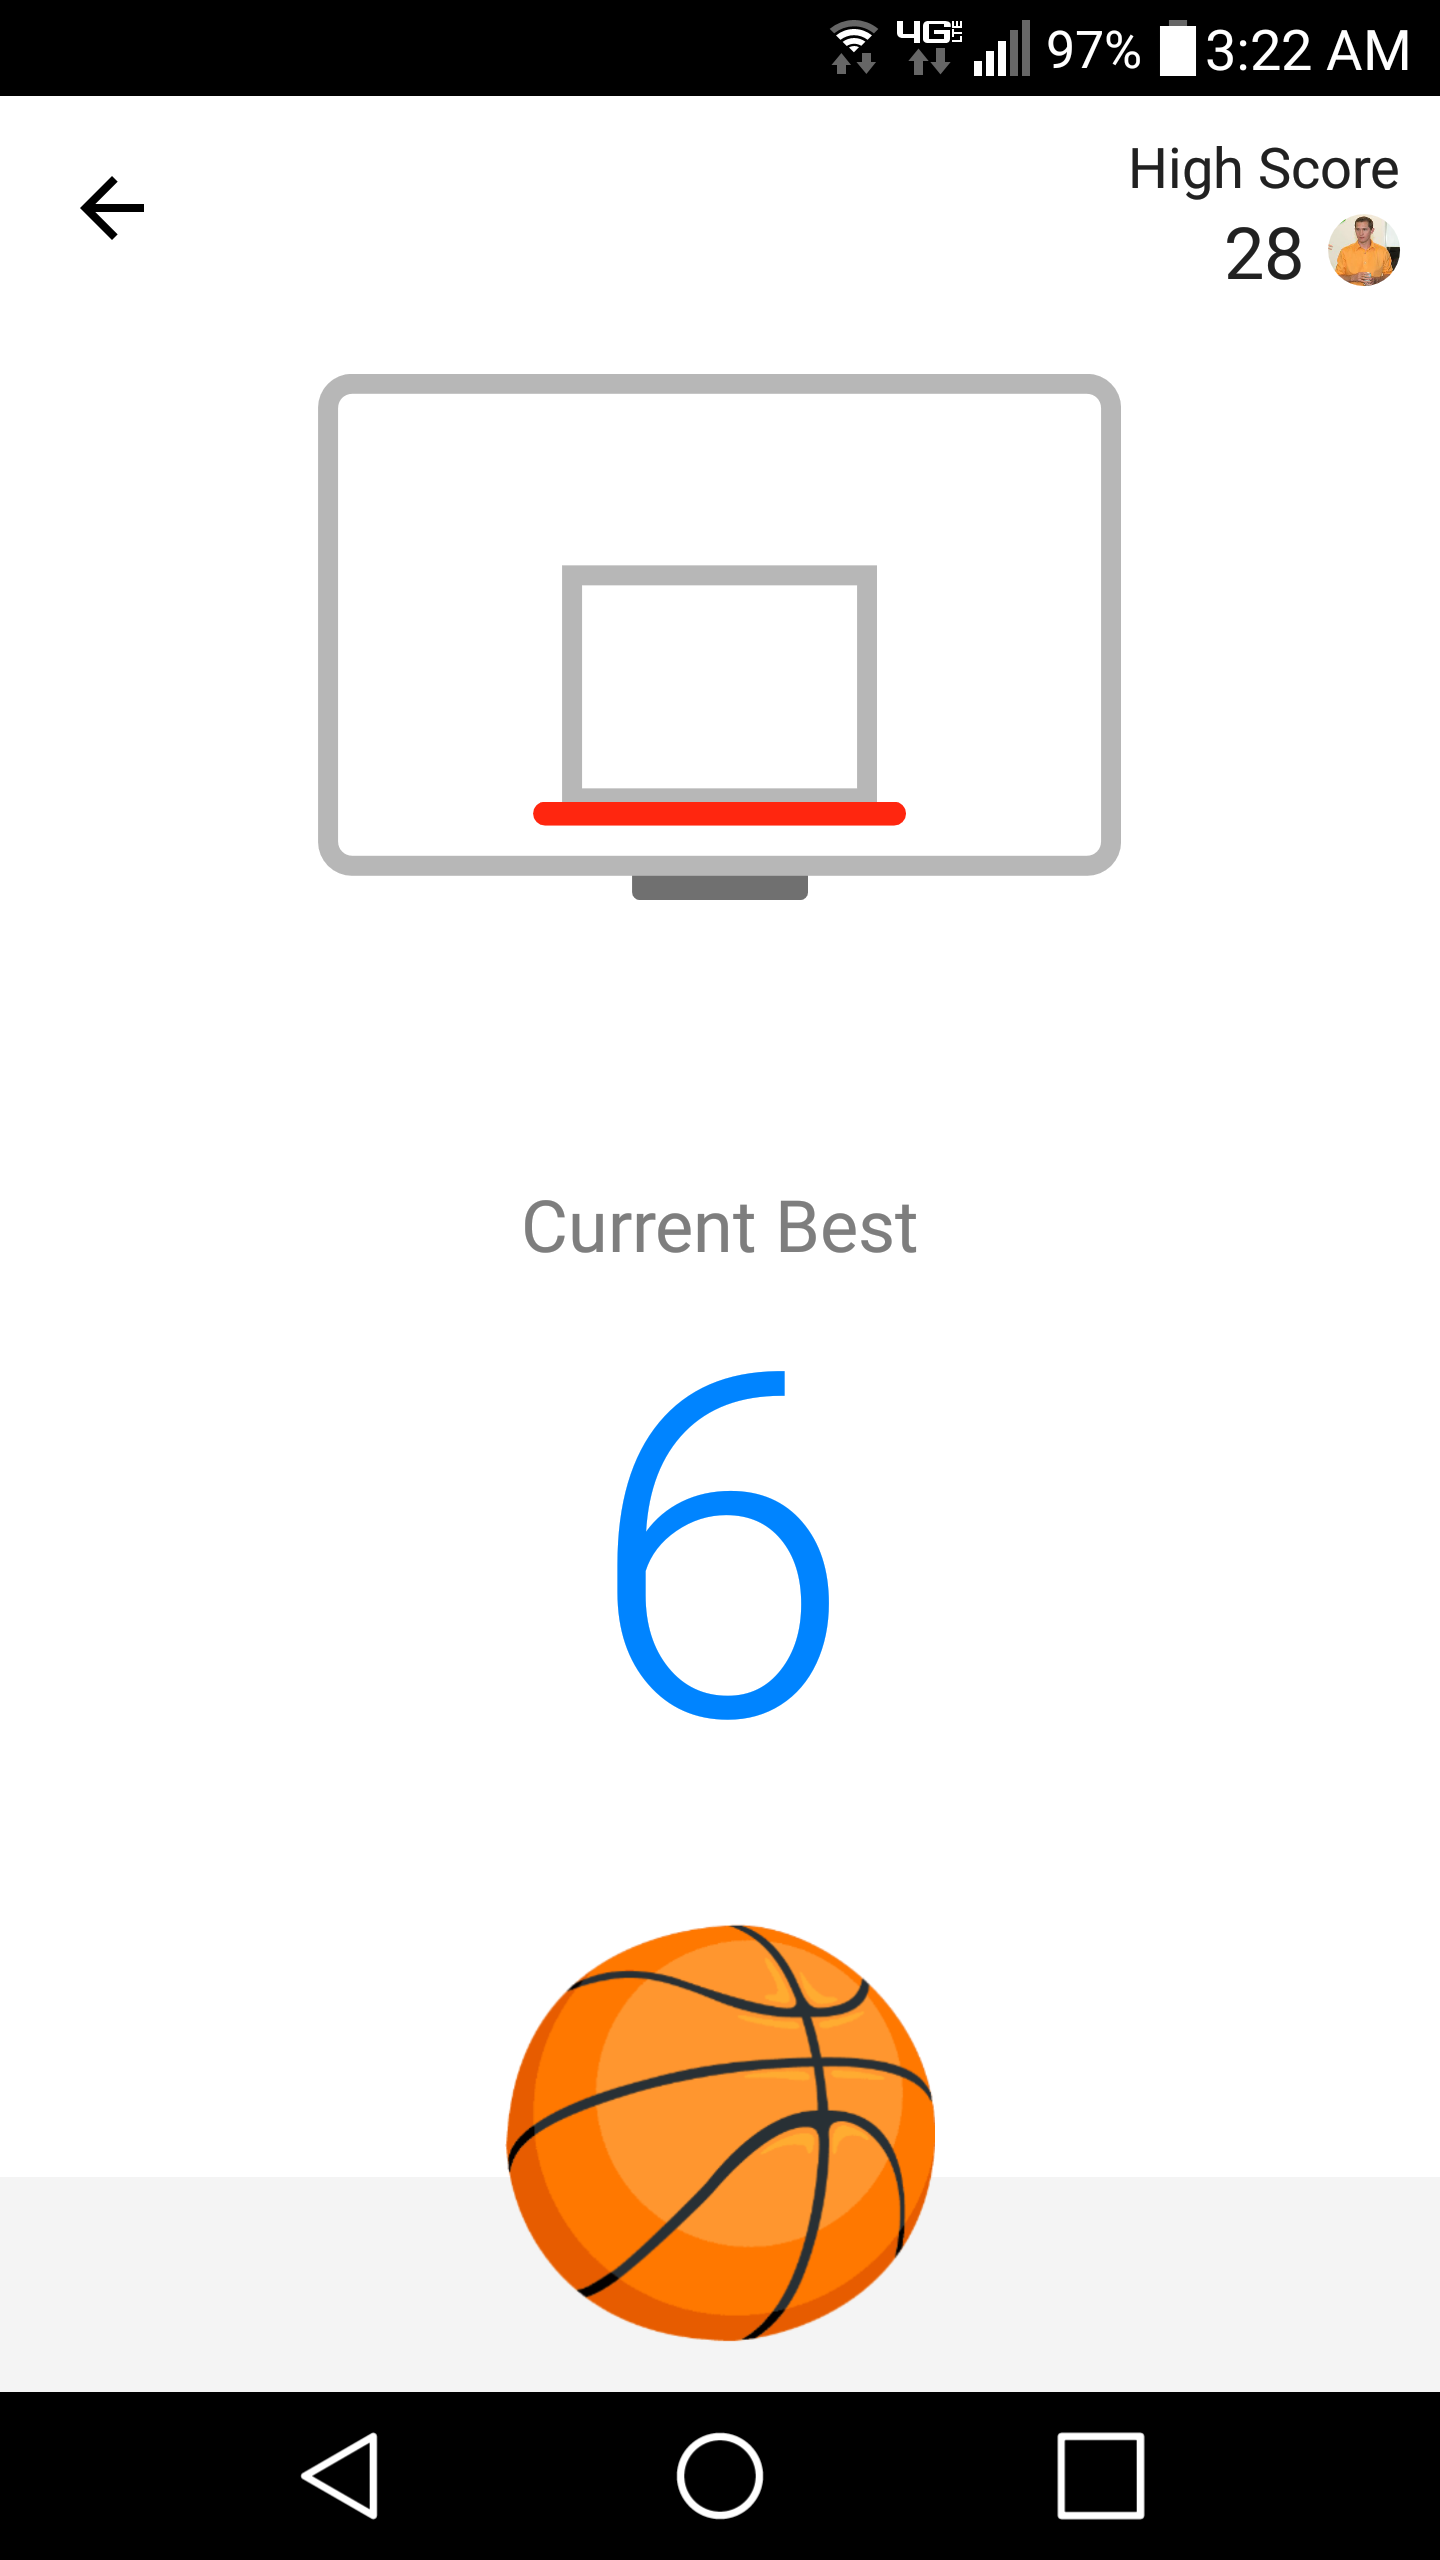 Messenger Basketball personal high score